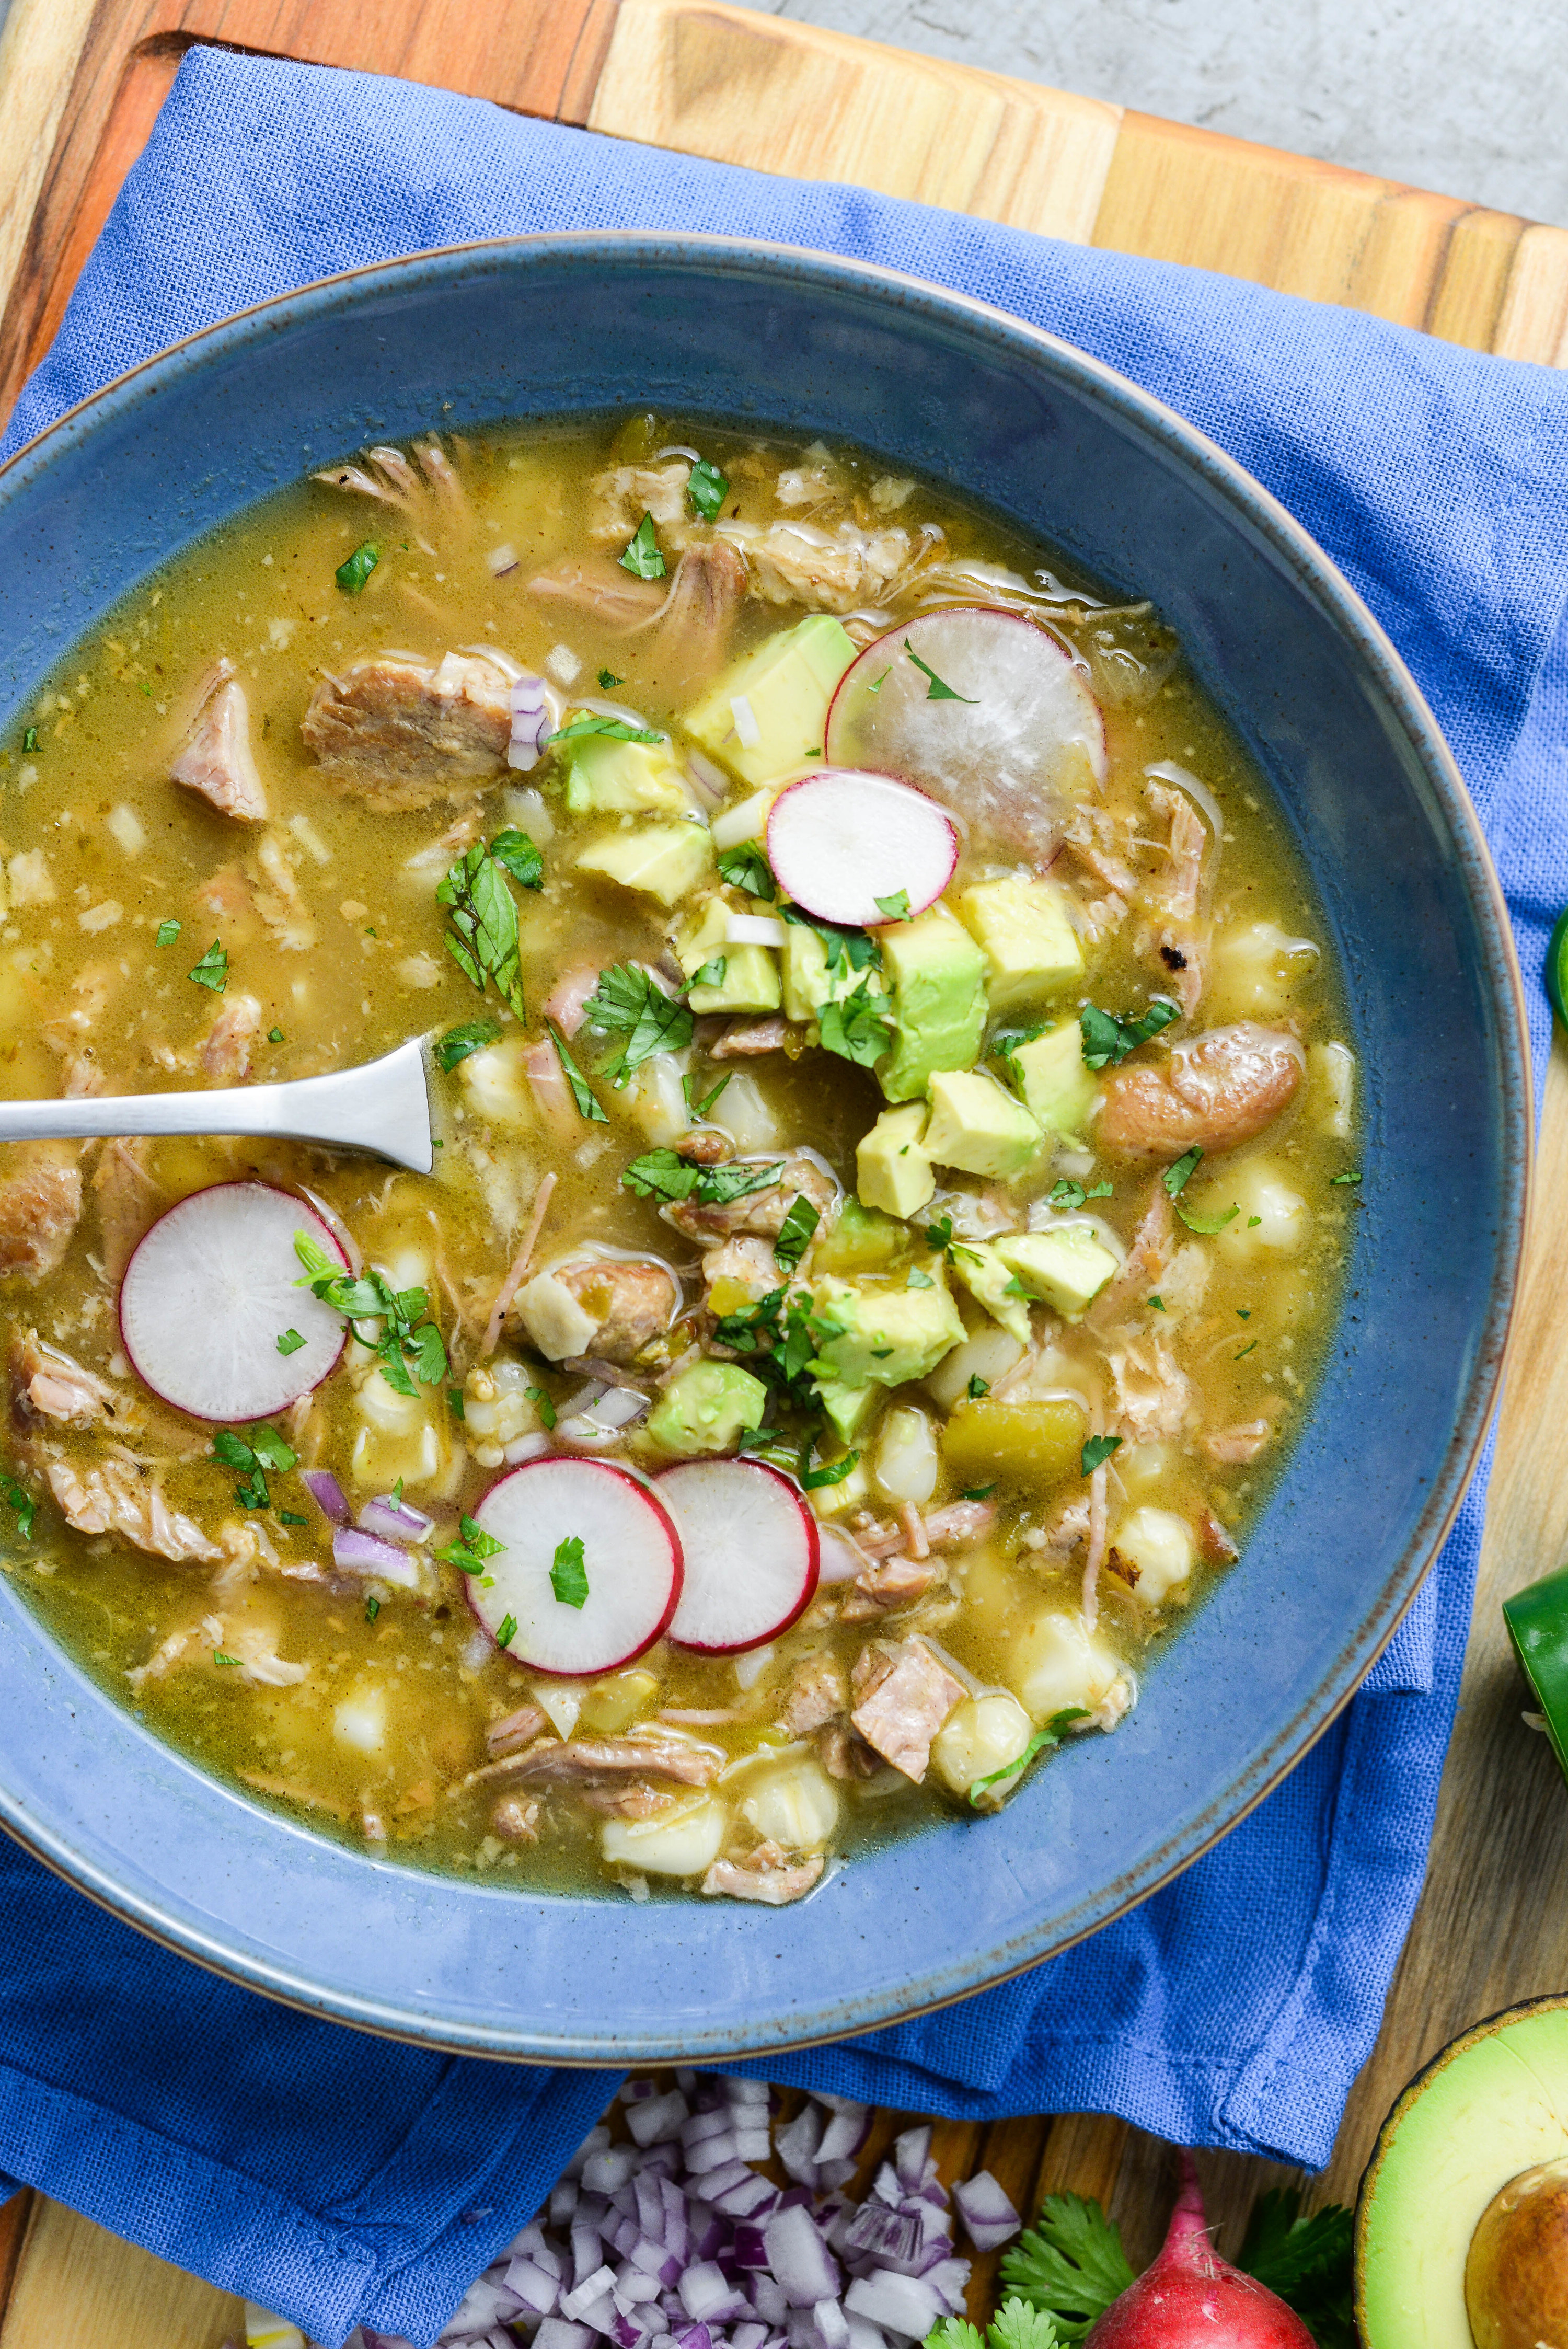 A bowl of green pozole with pork, hominy, radishes, chopped red onion, and avocado.